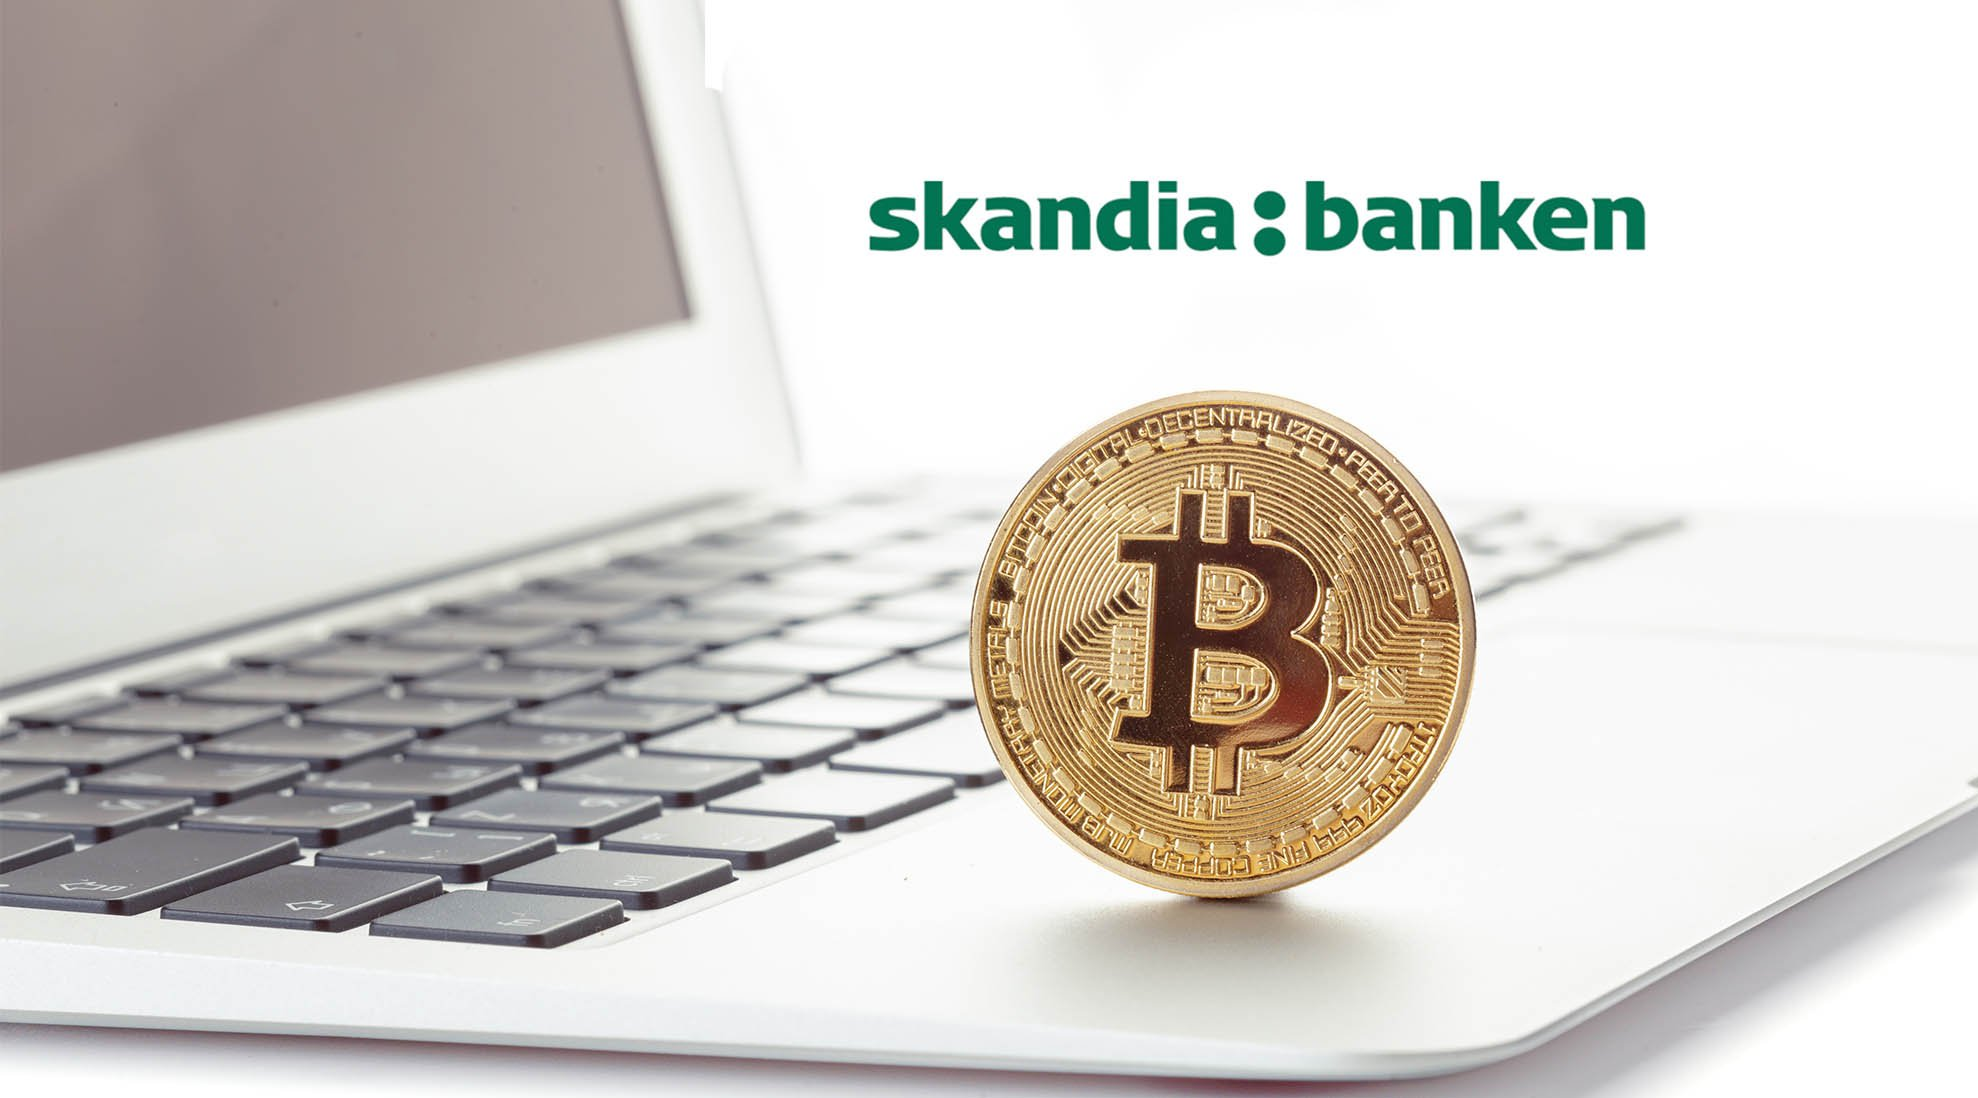 Norwegian Bank Grants Access to Bitcoin Investments Through Online Banking